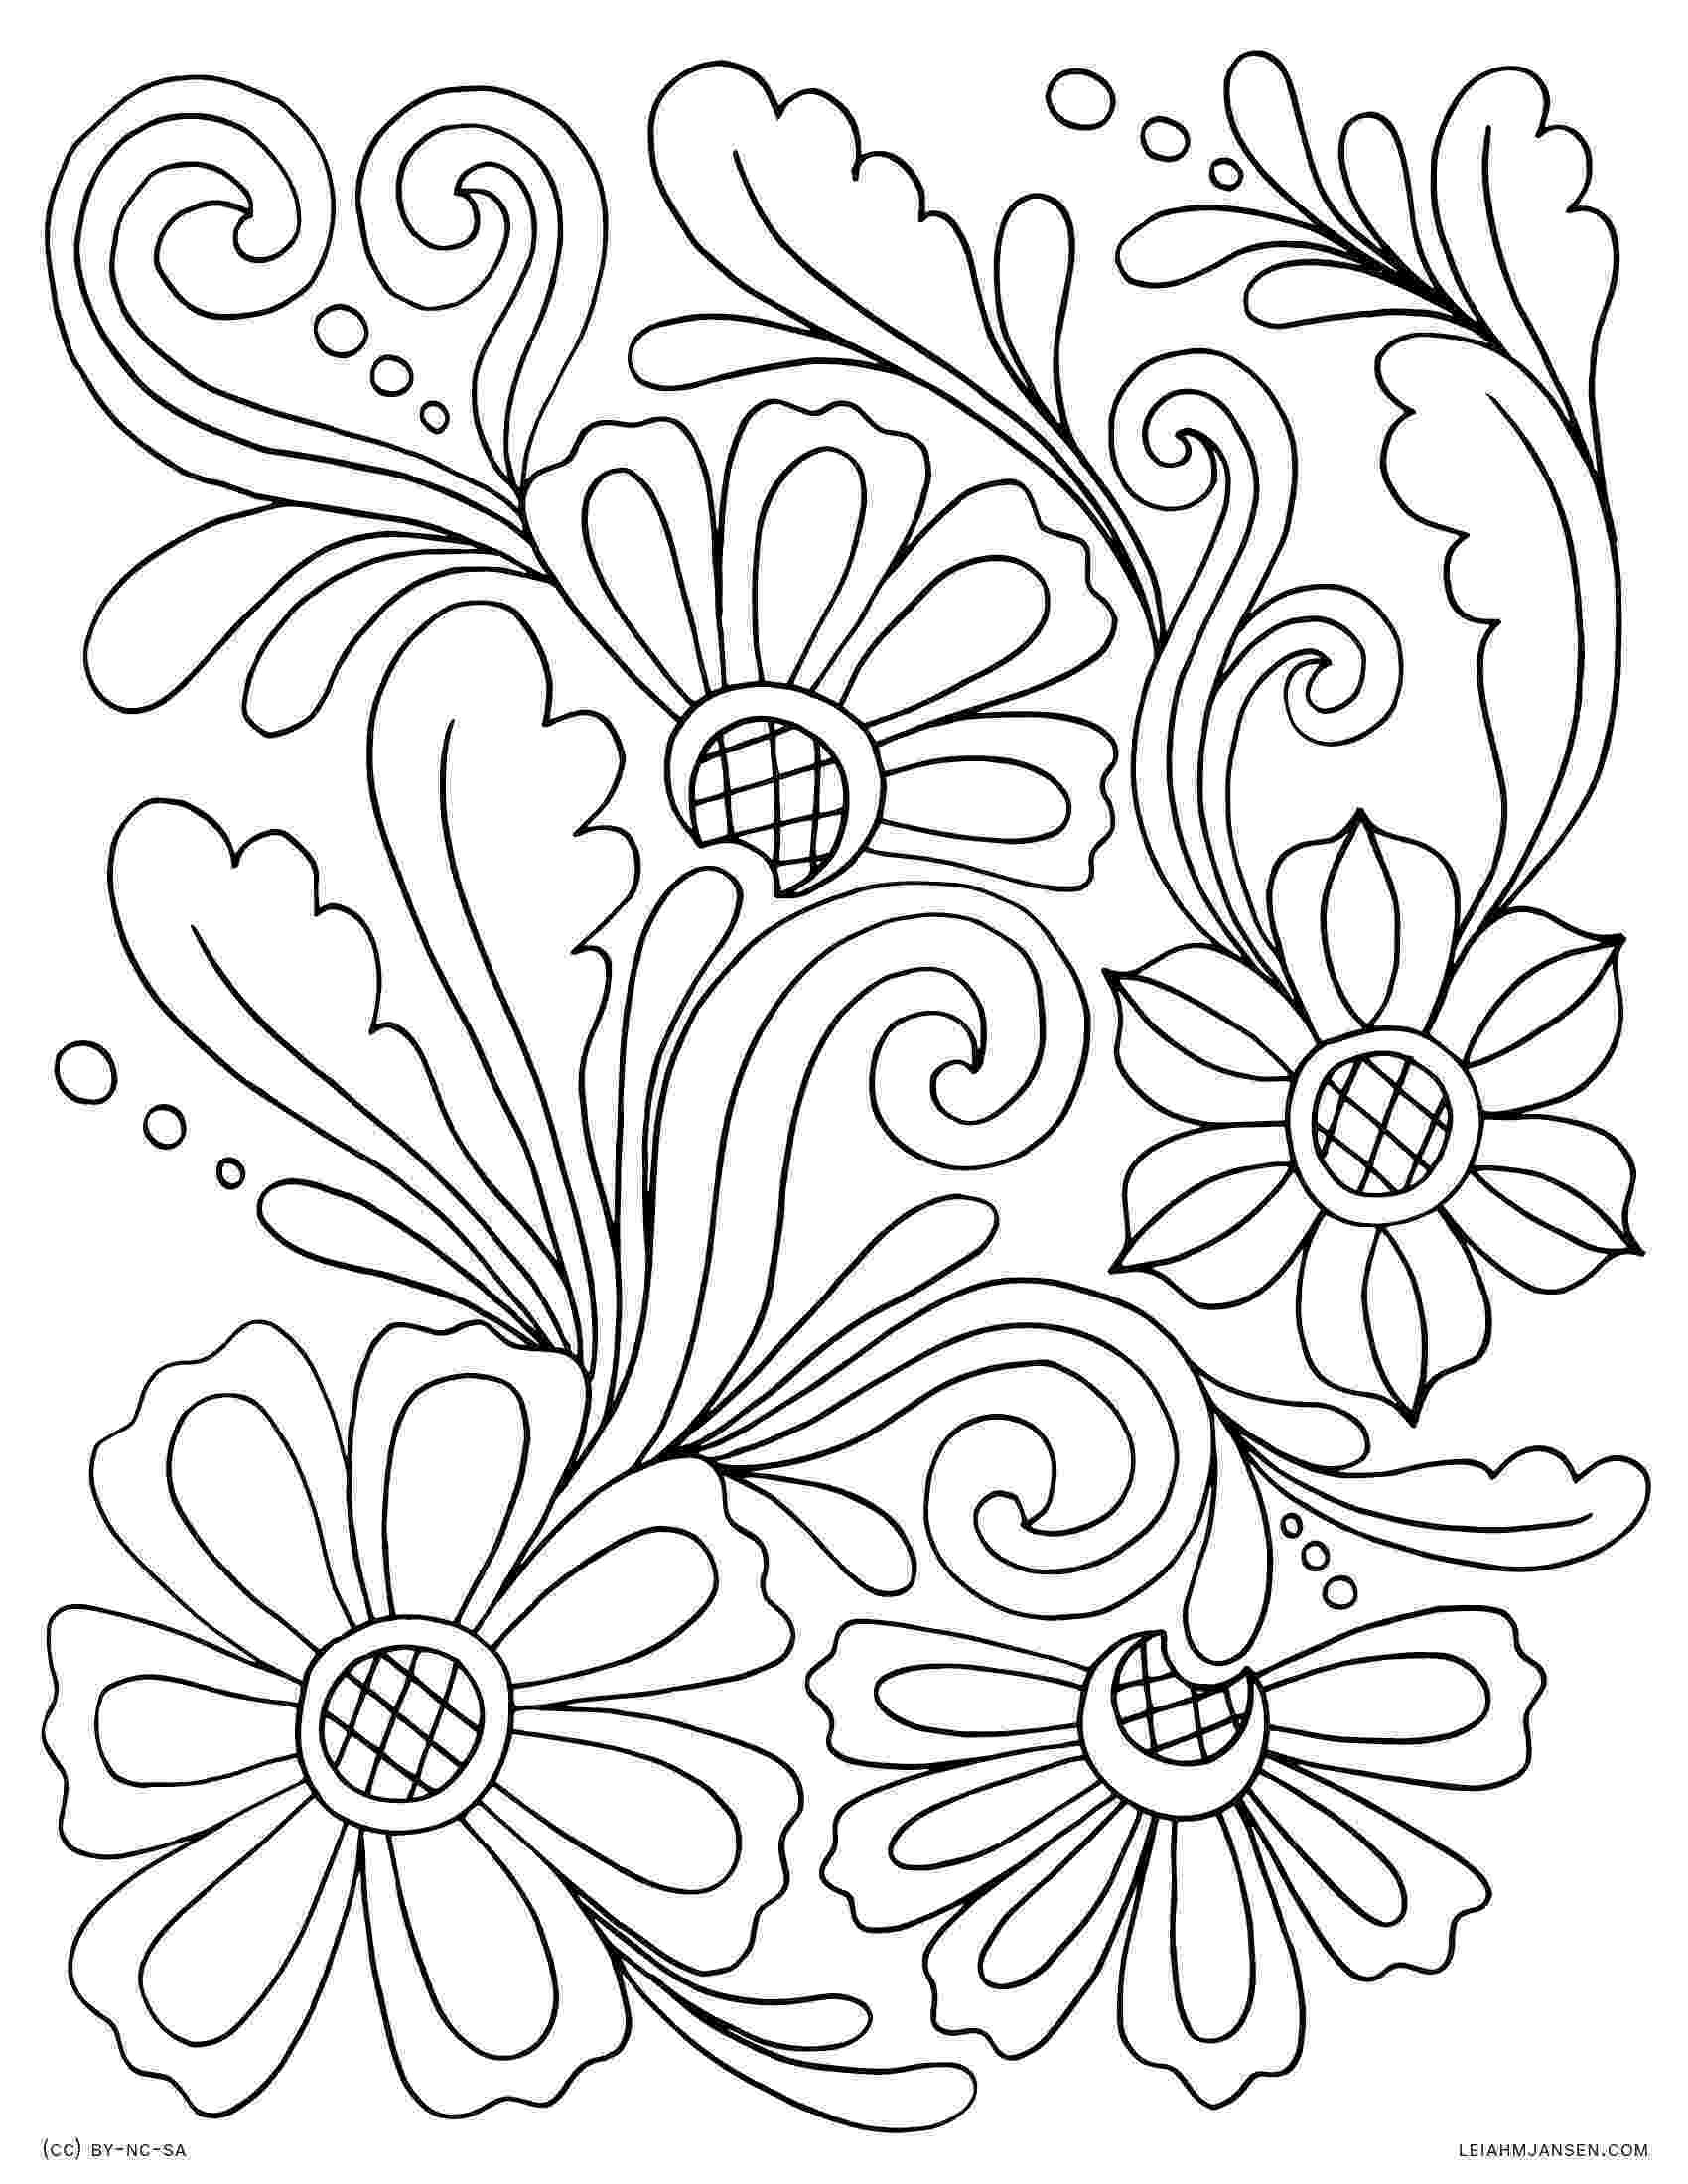 coloring pages online for adults free coloring pages adult coloring worldwide for coloring pages adults online